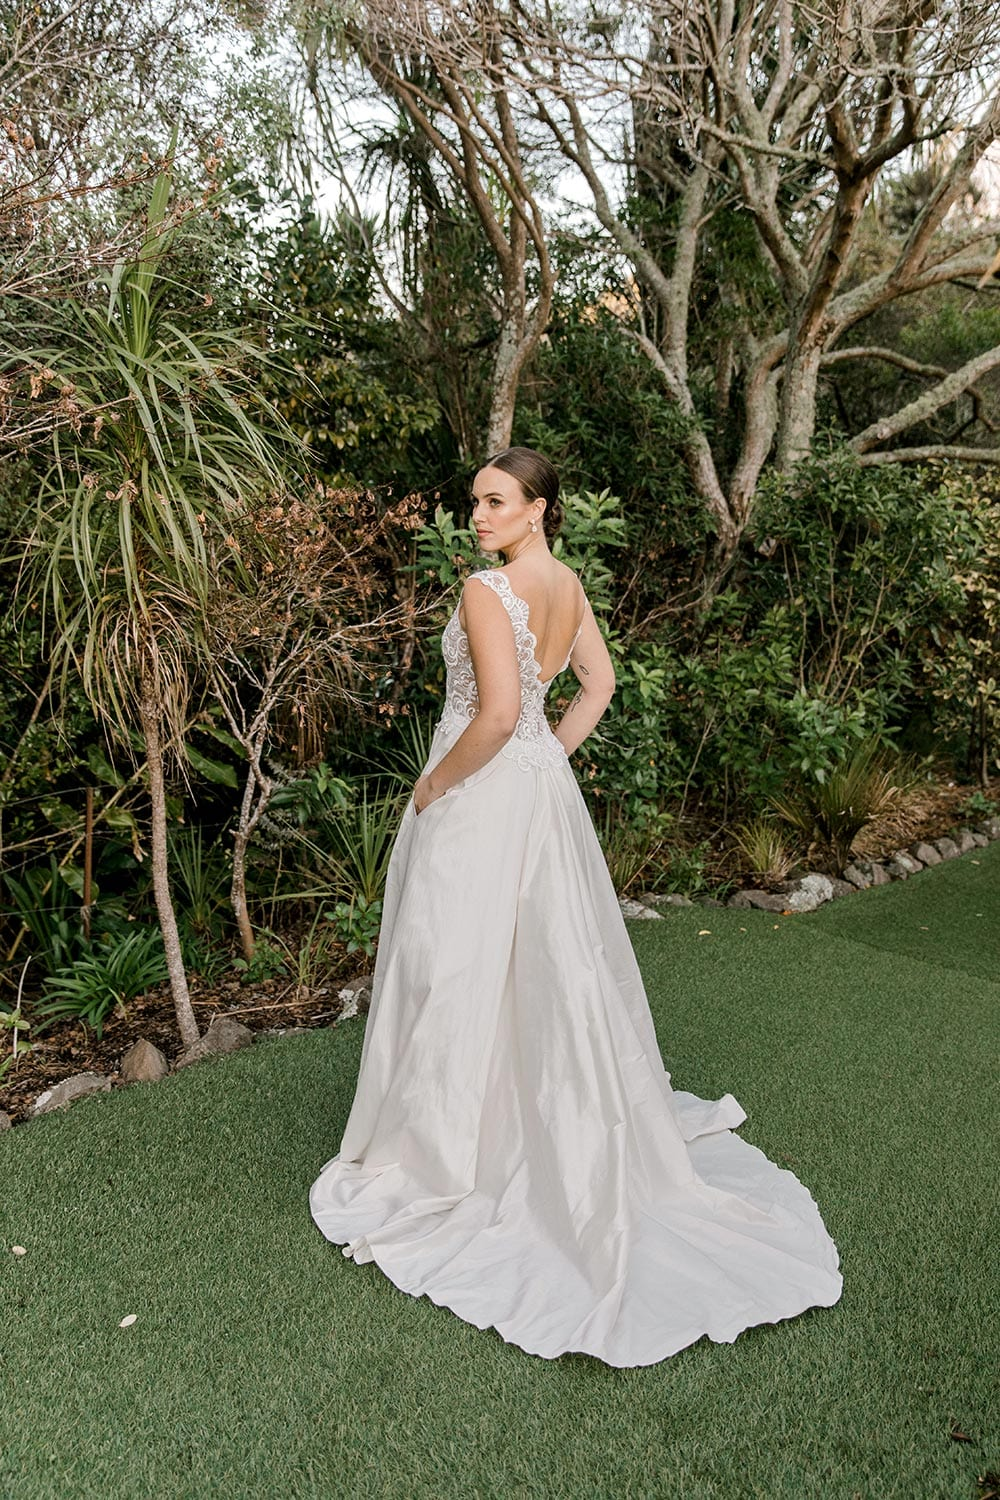 Ashleigh Wedding Dress from Vinka Design. Wedding dress with semi-sheer, richly embroidered fitted bodice on a nude base adorned with guipure lace. Dramatic silk dupion full skirt with side pockets. Dress back detail with flowing skirt, photographed at Tui Hills by Emmaline Photography.